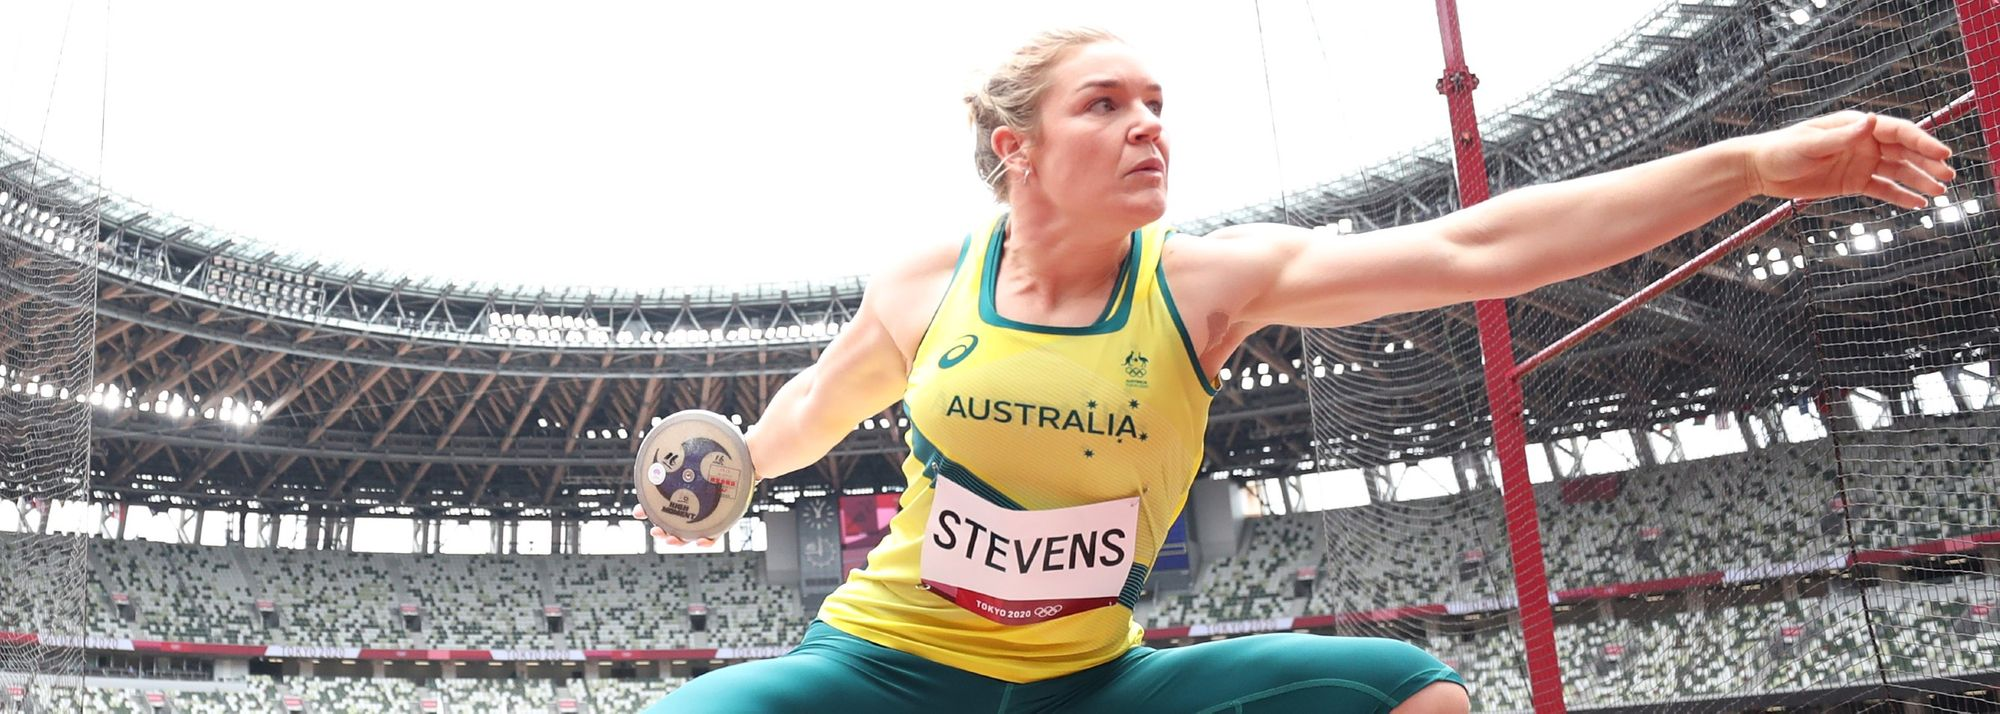 Australia's Dani Stevens has announced her retirement from competitive athletics after a career which saw her win a world discus title and compete at four Olympic Games.